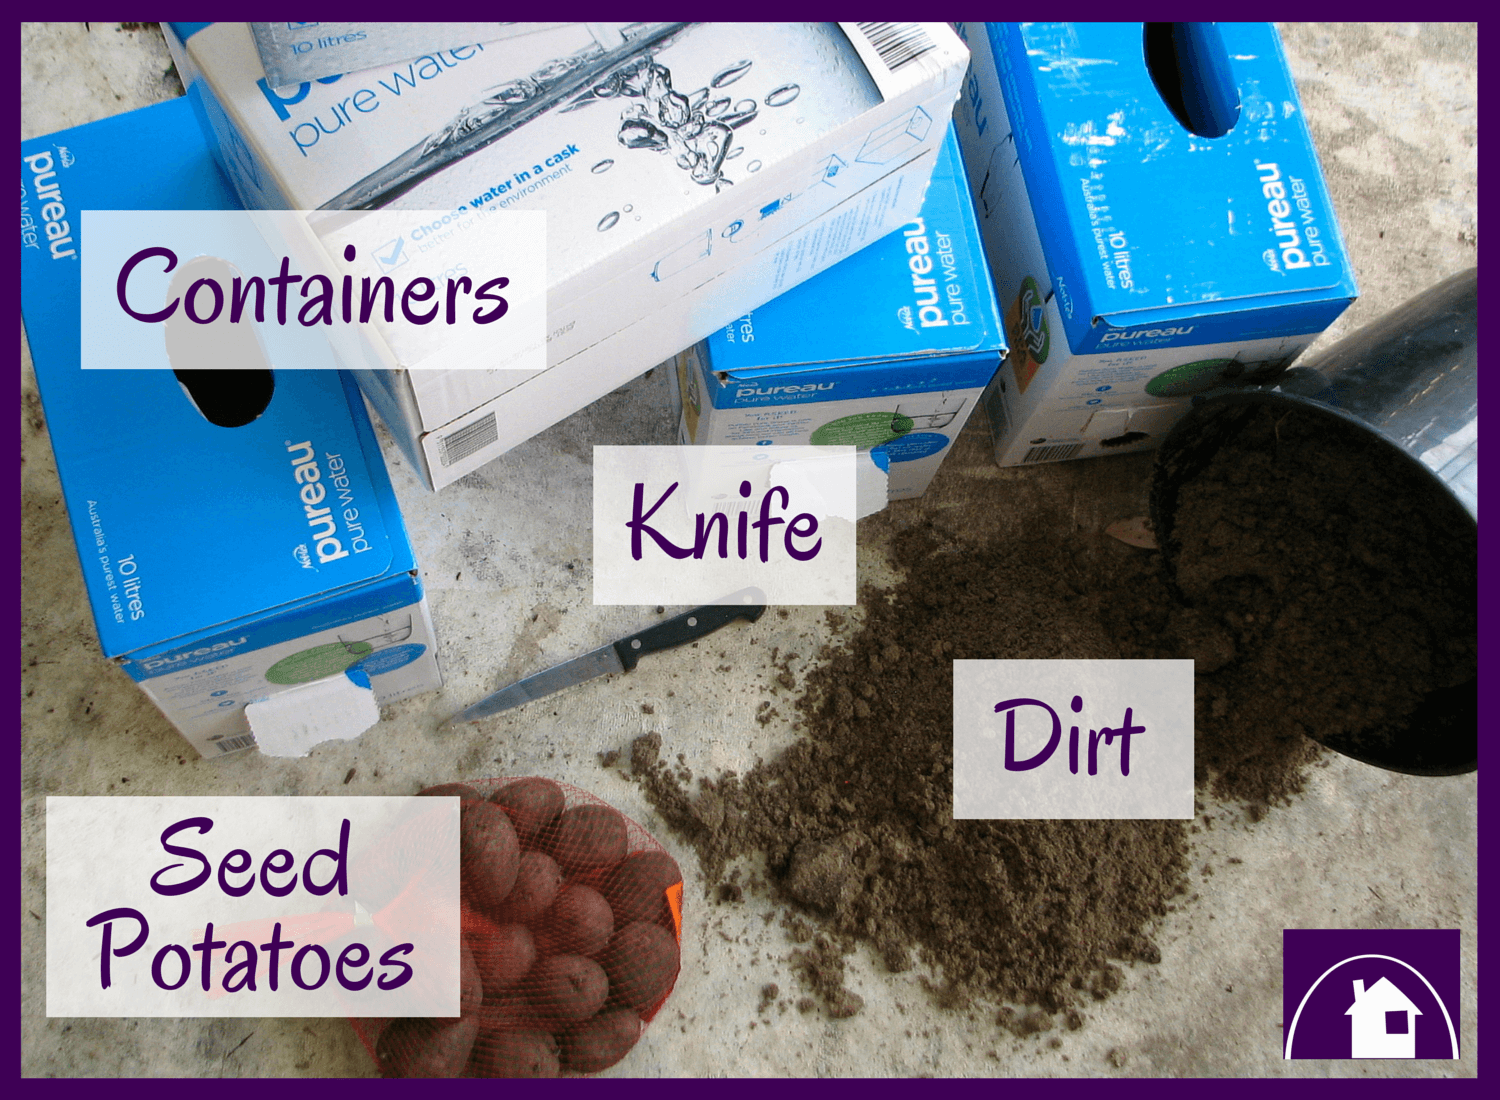 All you need to grow your own spuds, is a container some sand and a few seed potatoes